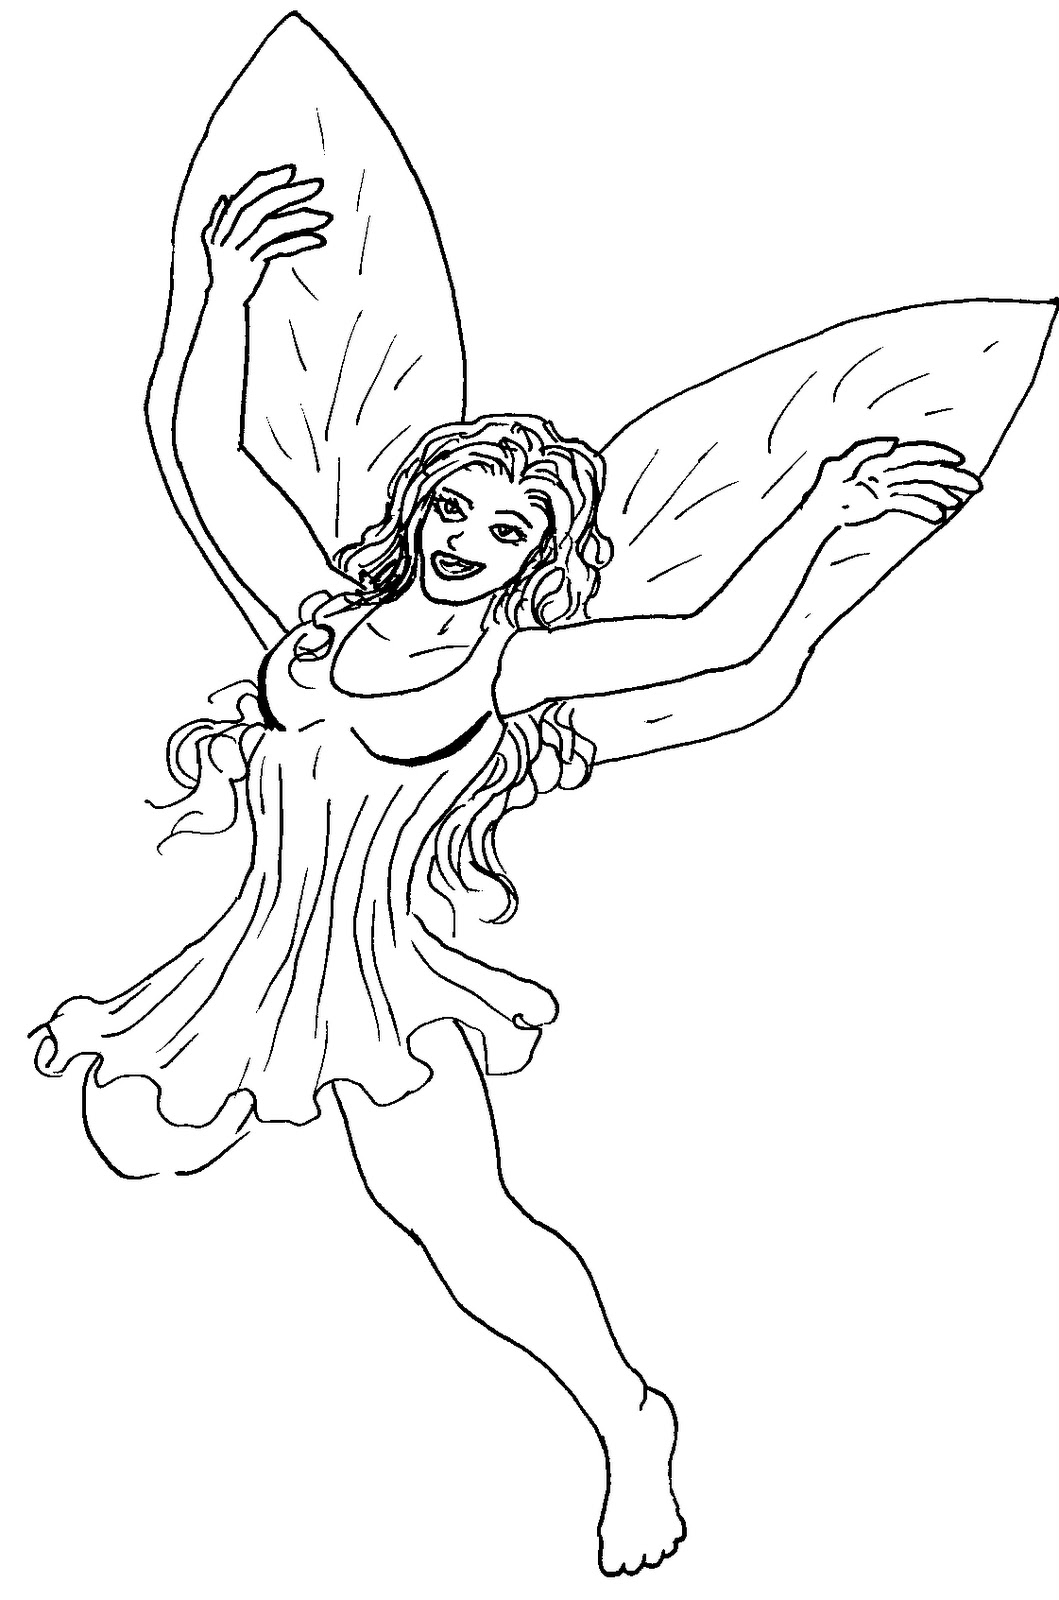 printable coloring pages of girls - photo#17